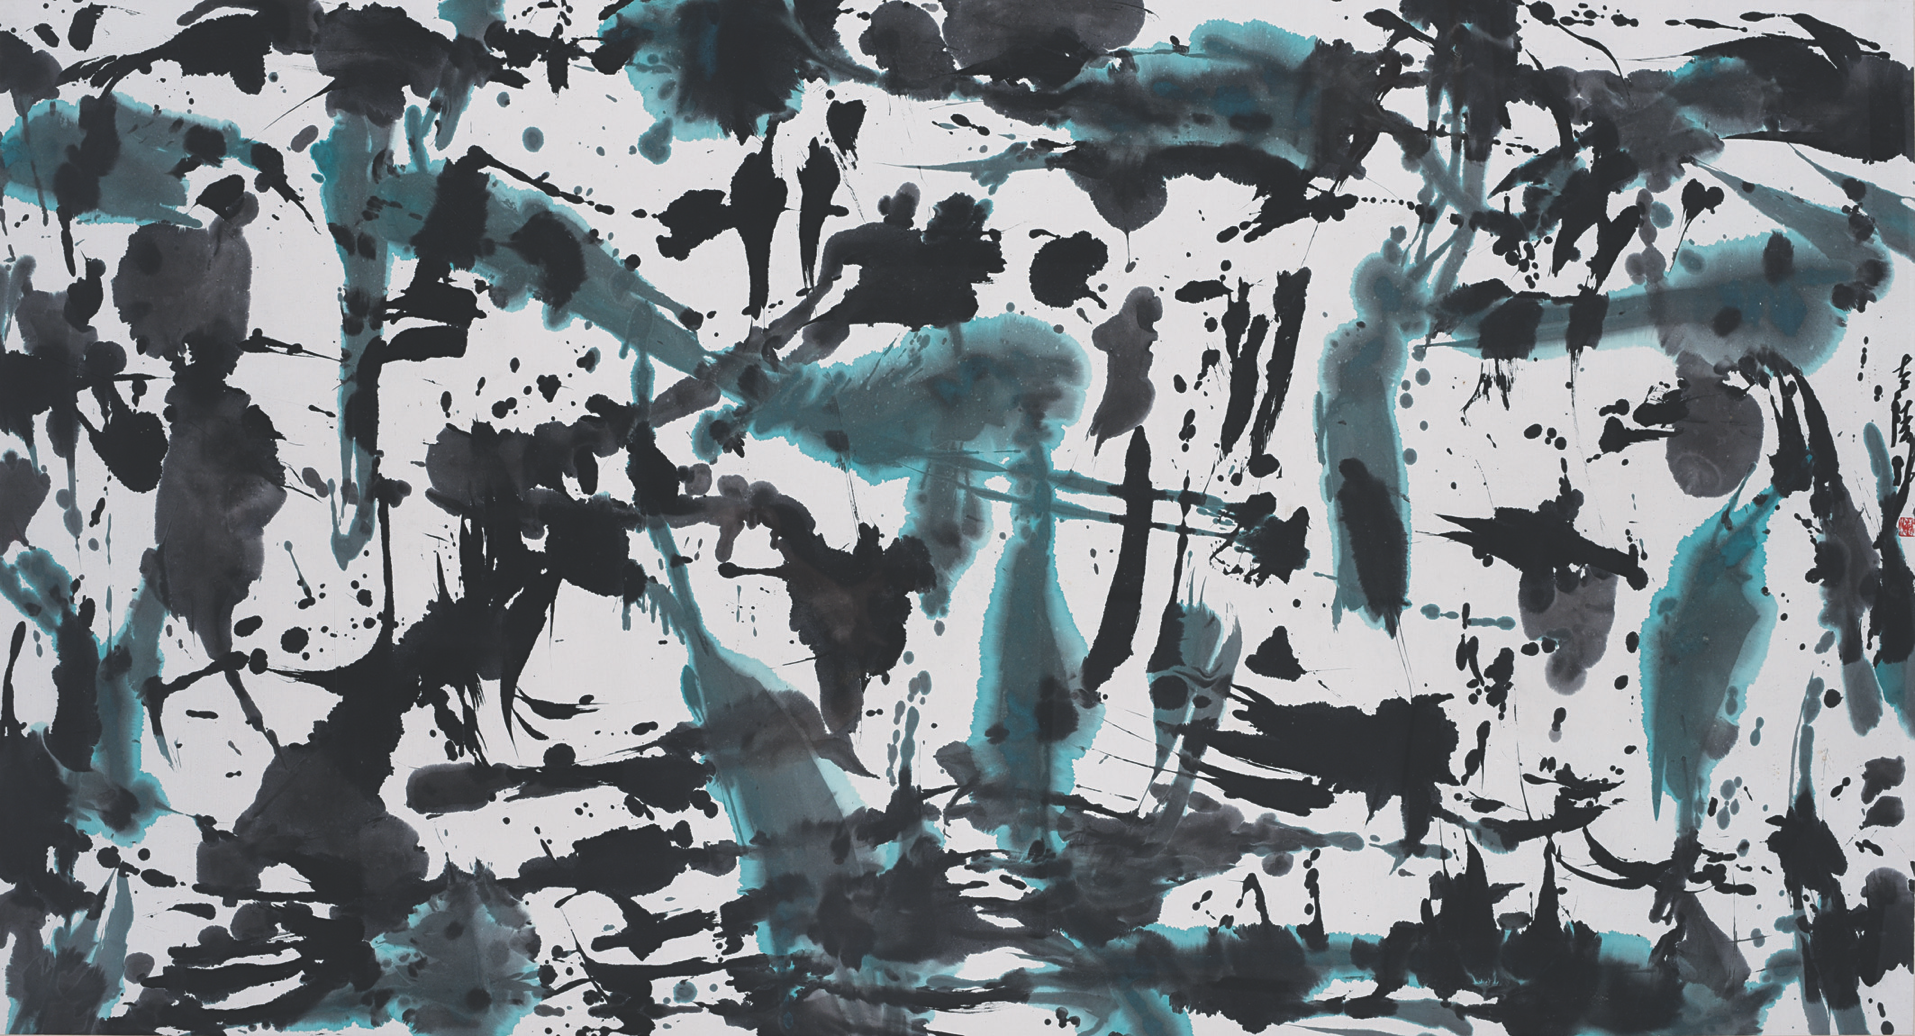 Zhuang Shengtao, Autumn Series, ink and pigment on rice paper, 96.5 x 179 cm, 1996